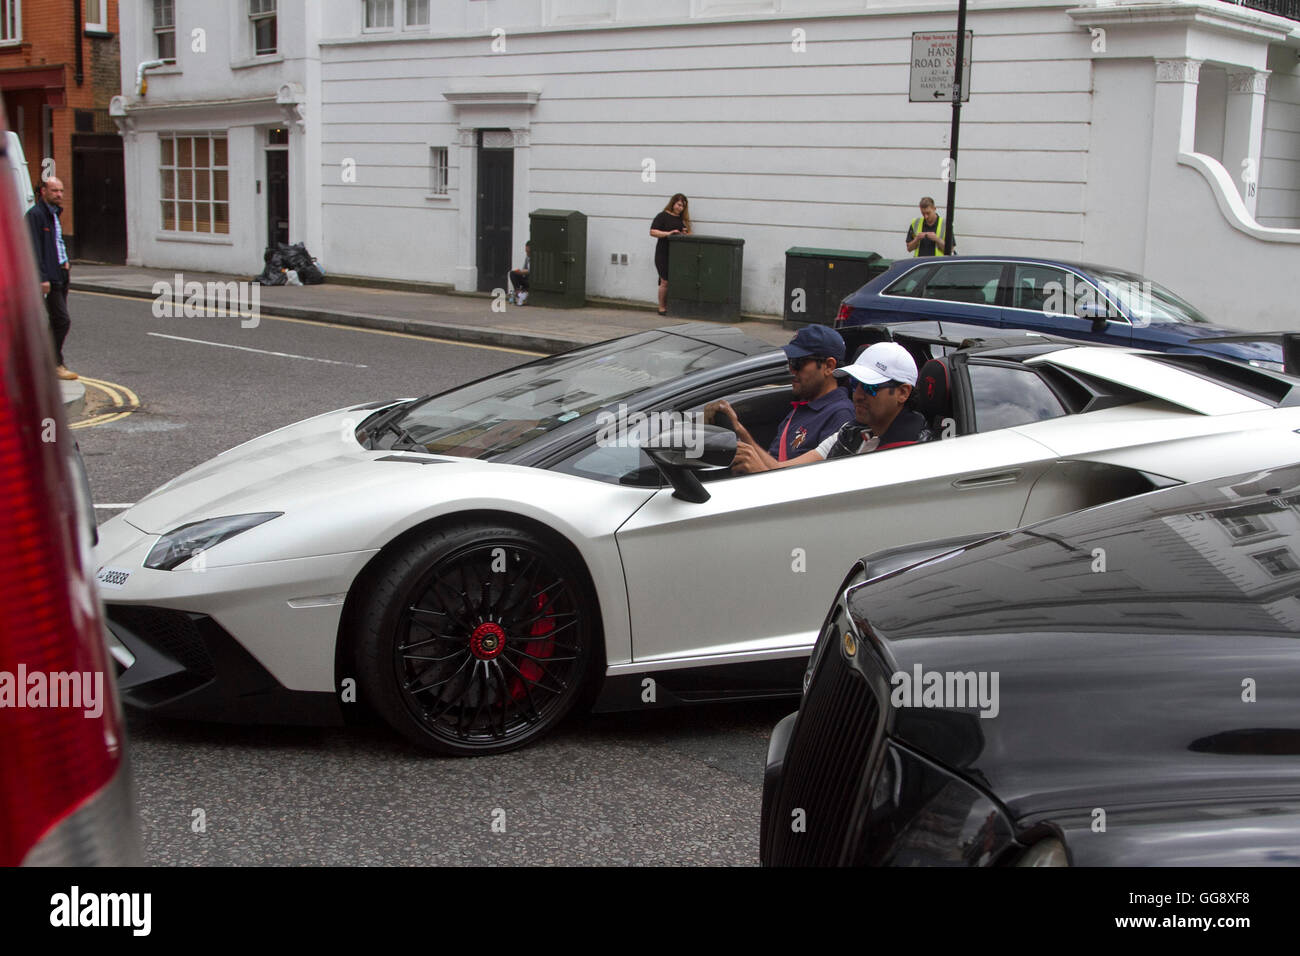 London Uk Aug A Lamborghini Aventador Supercar With